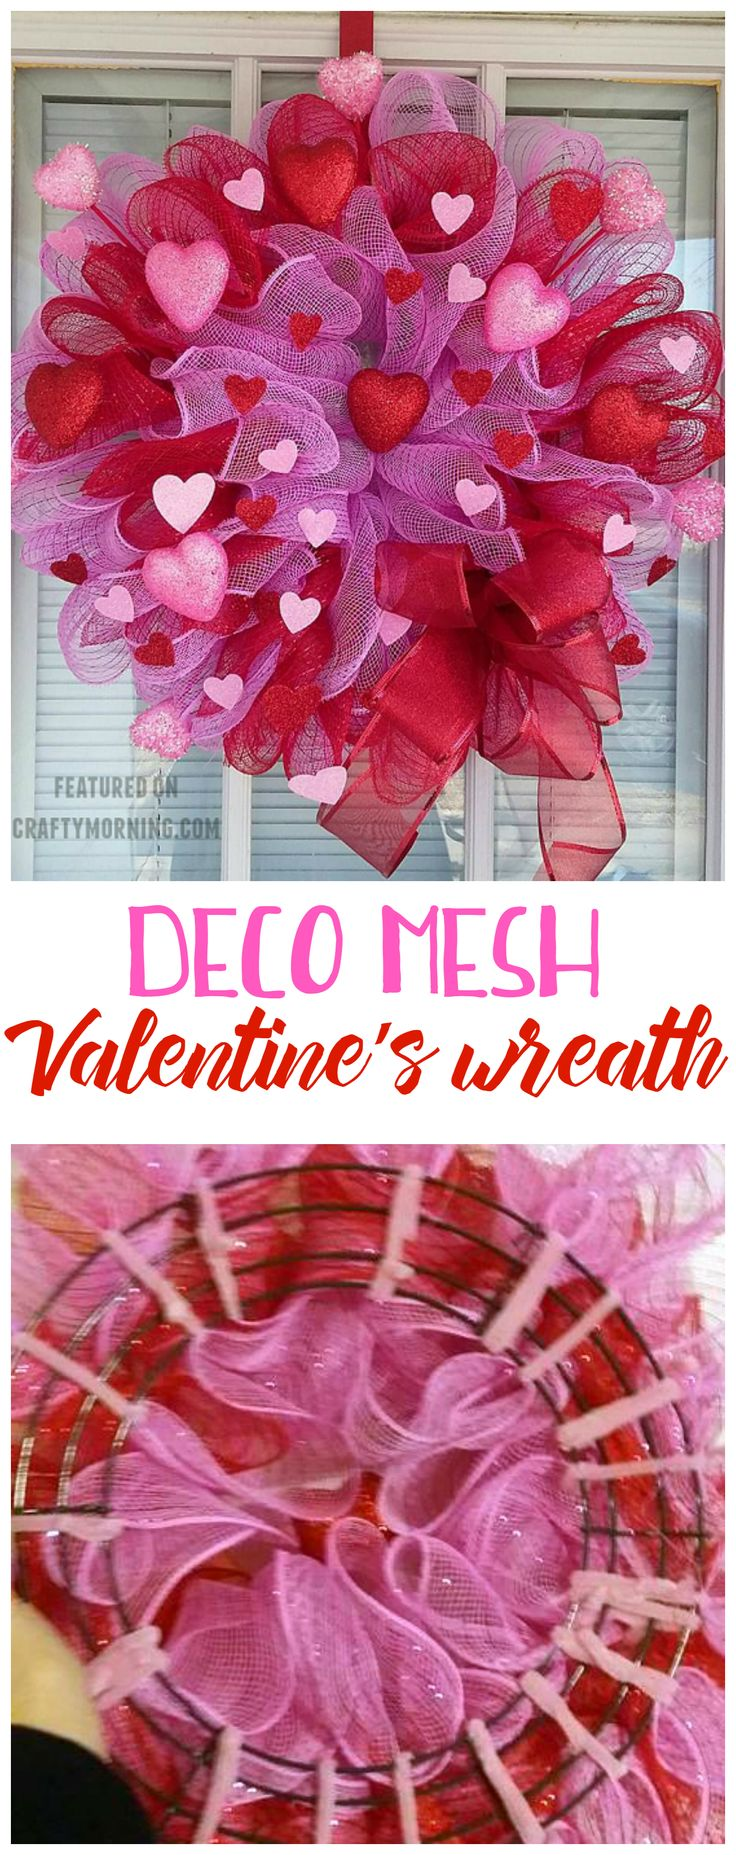 Crafts with deco mesh - How To Make A Deco Mesh Valentine Wreath